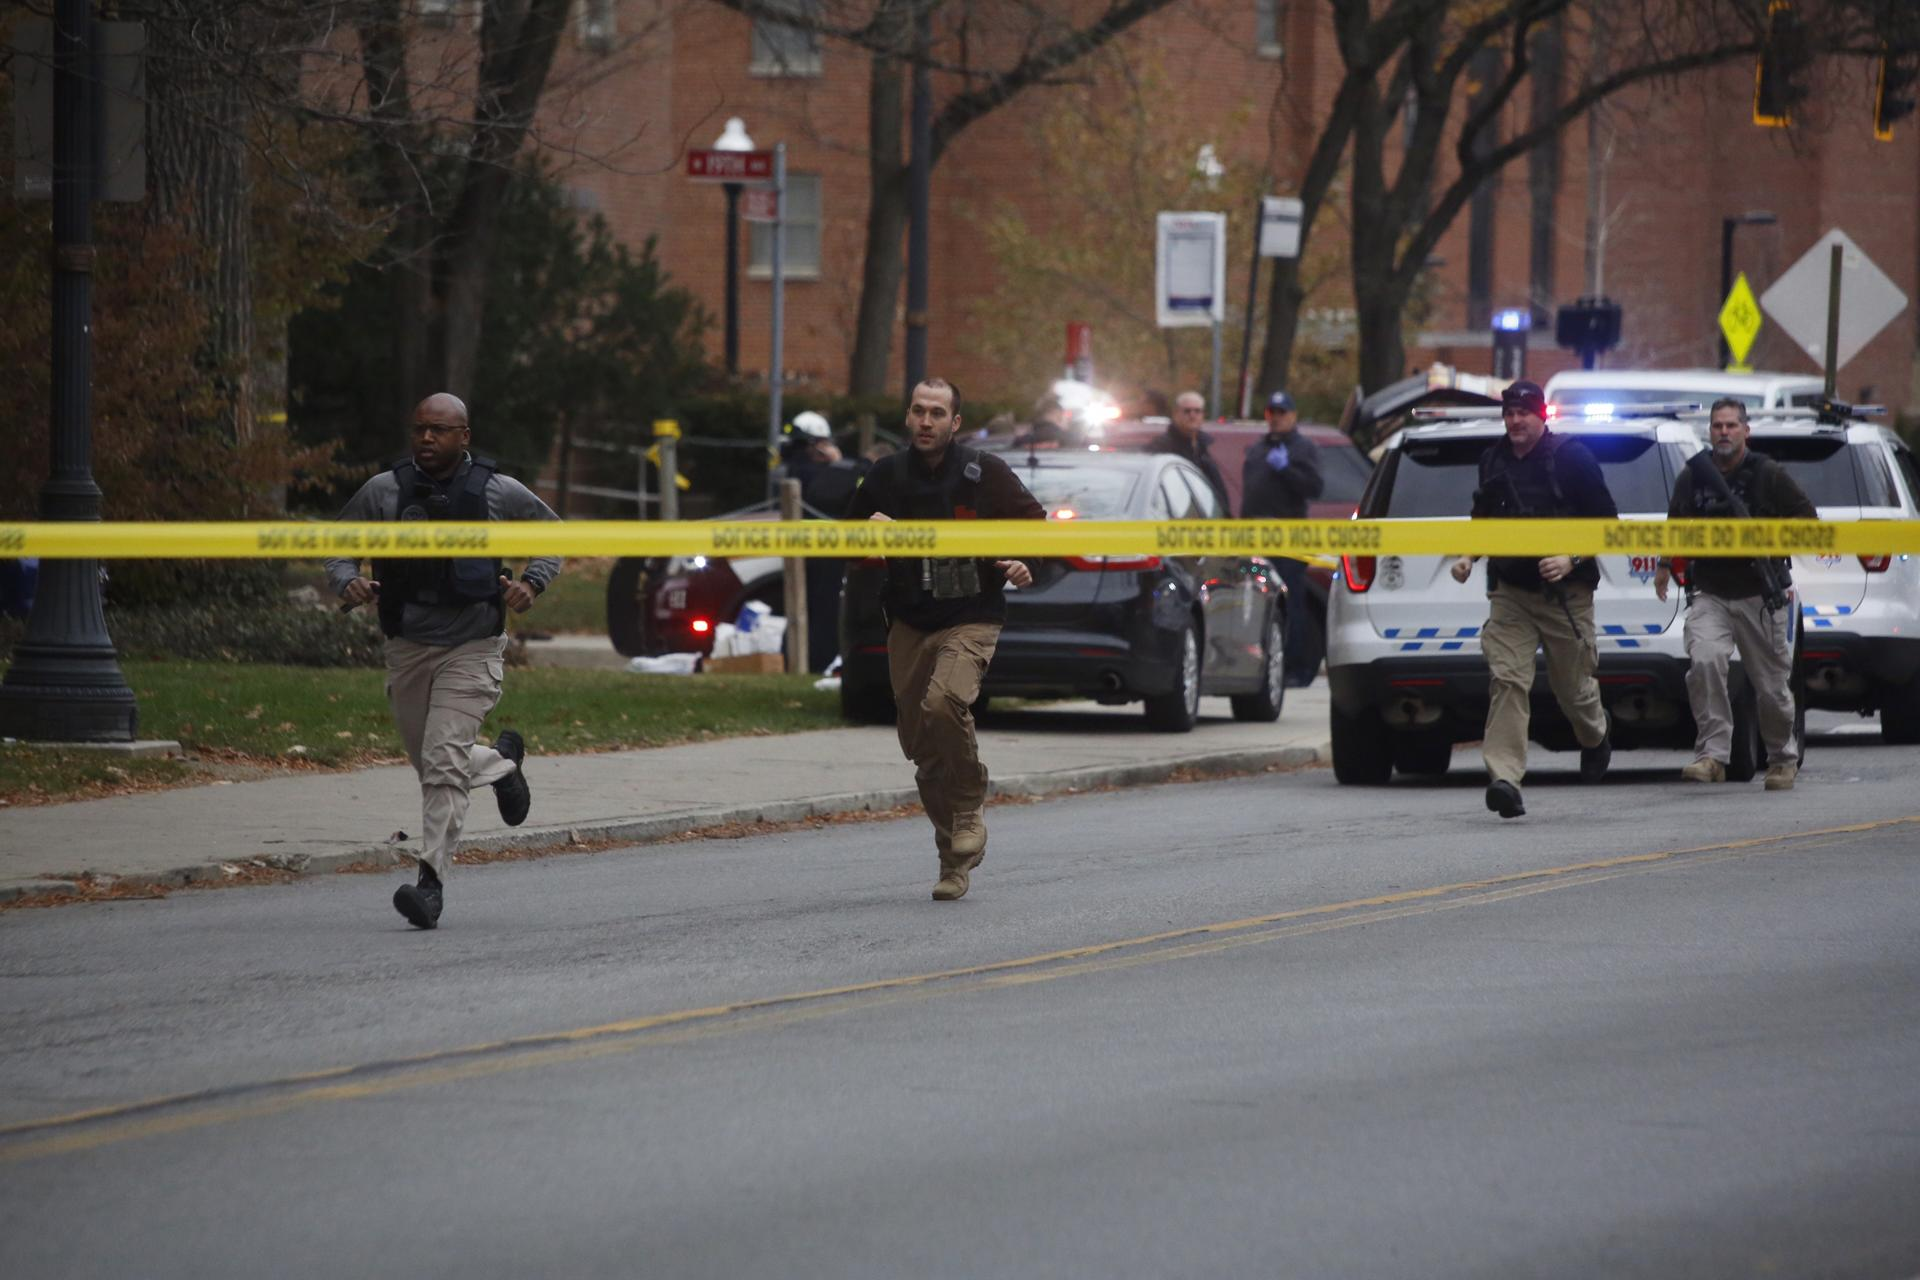 photos report of active shooter at ohio state university the